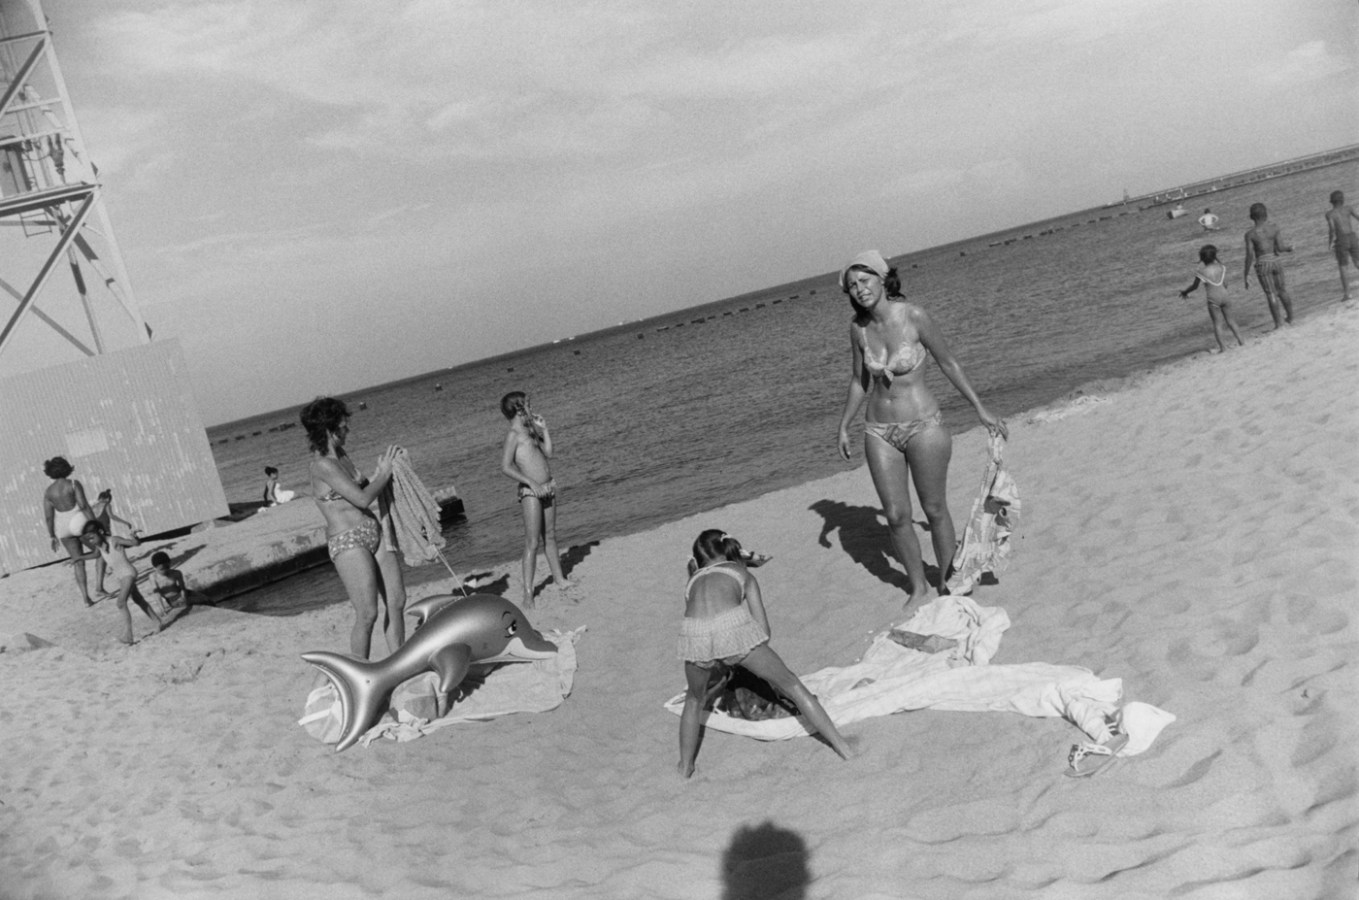 Black-and-white photograph of a group of people in swimsuits on the beach